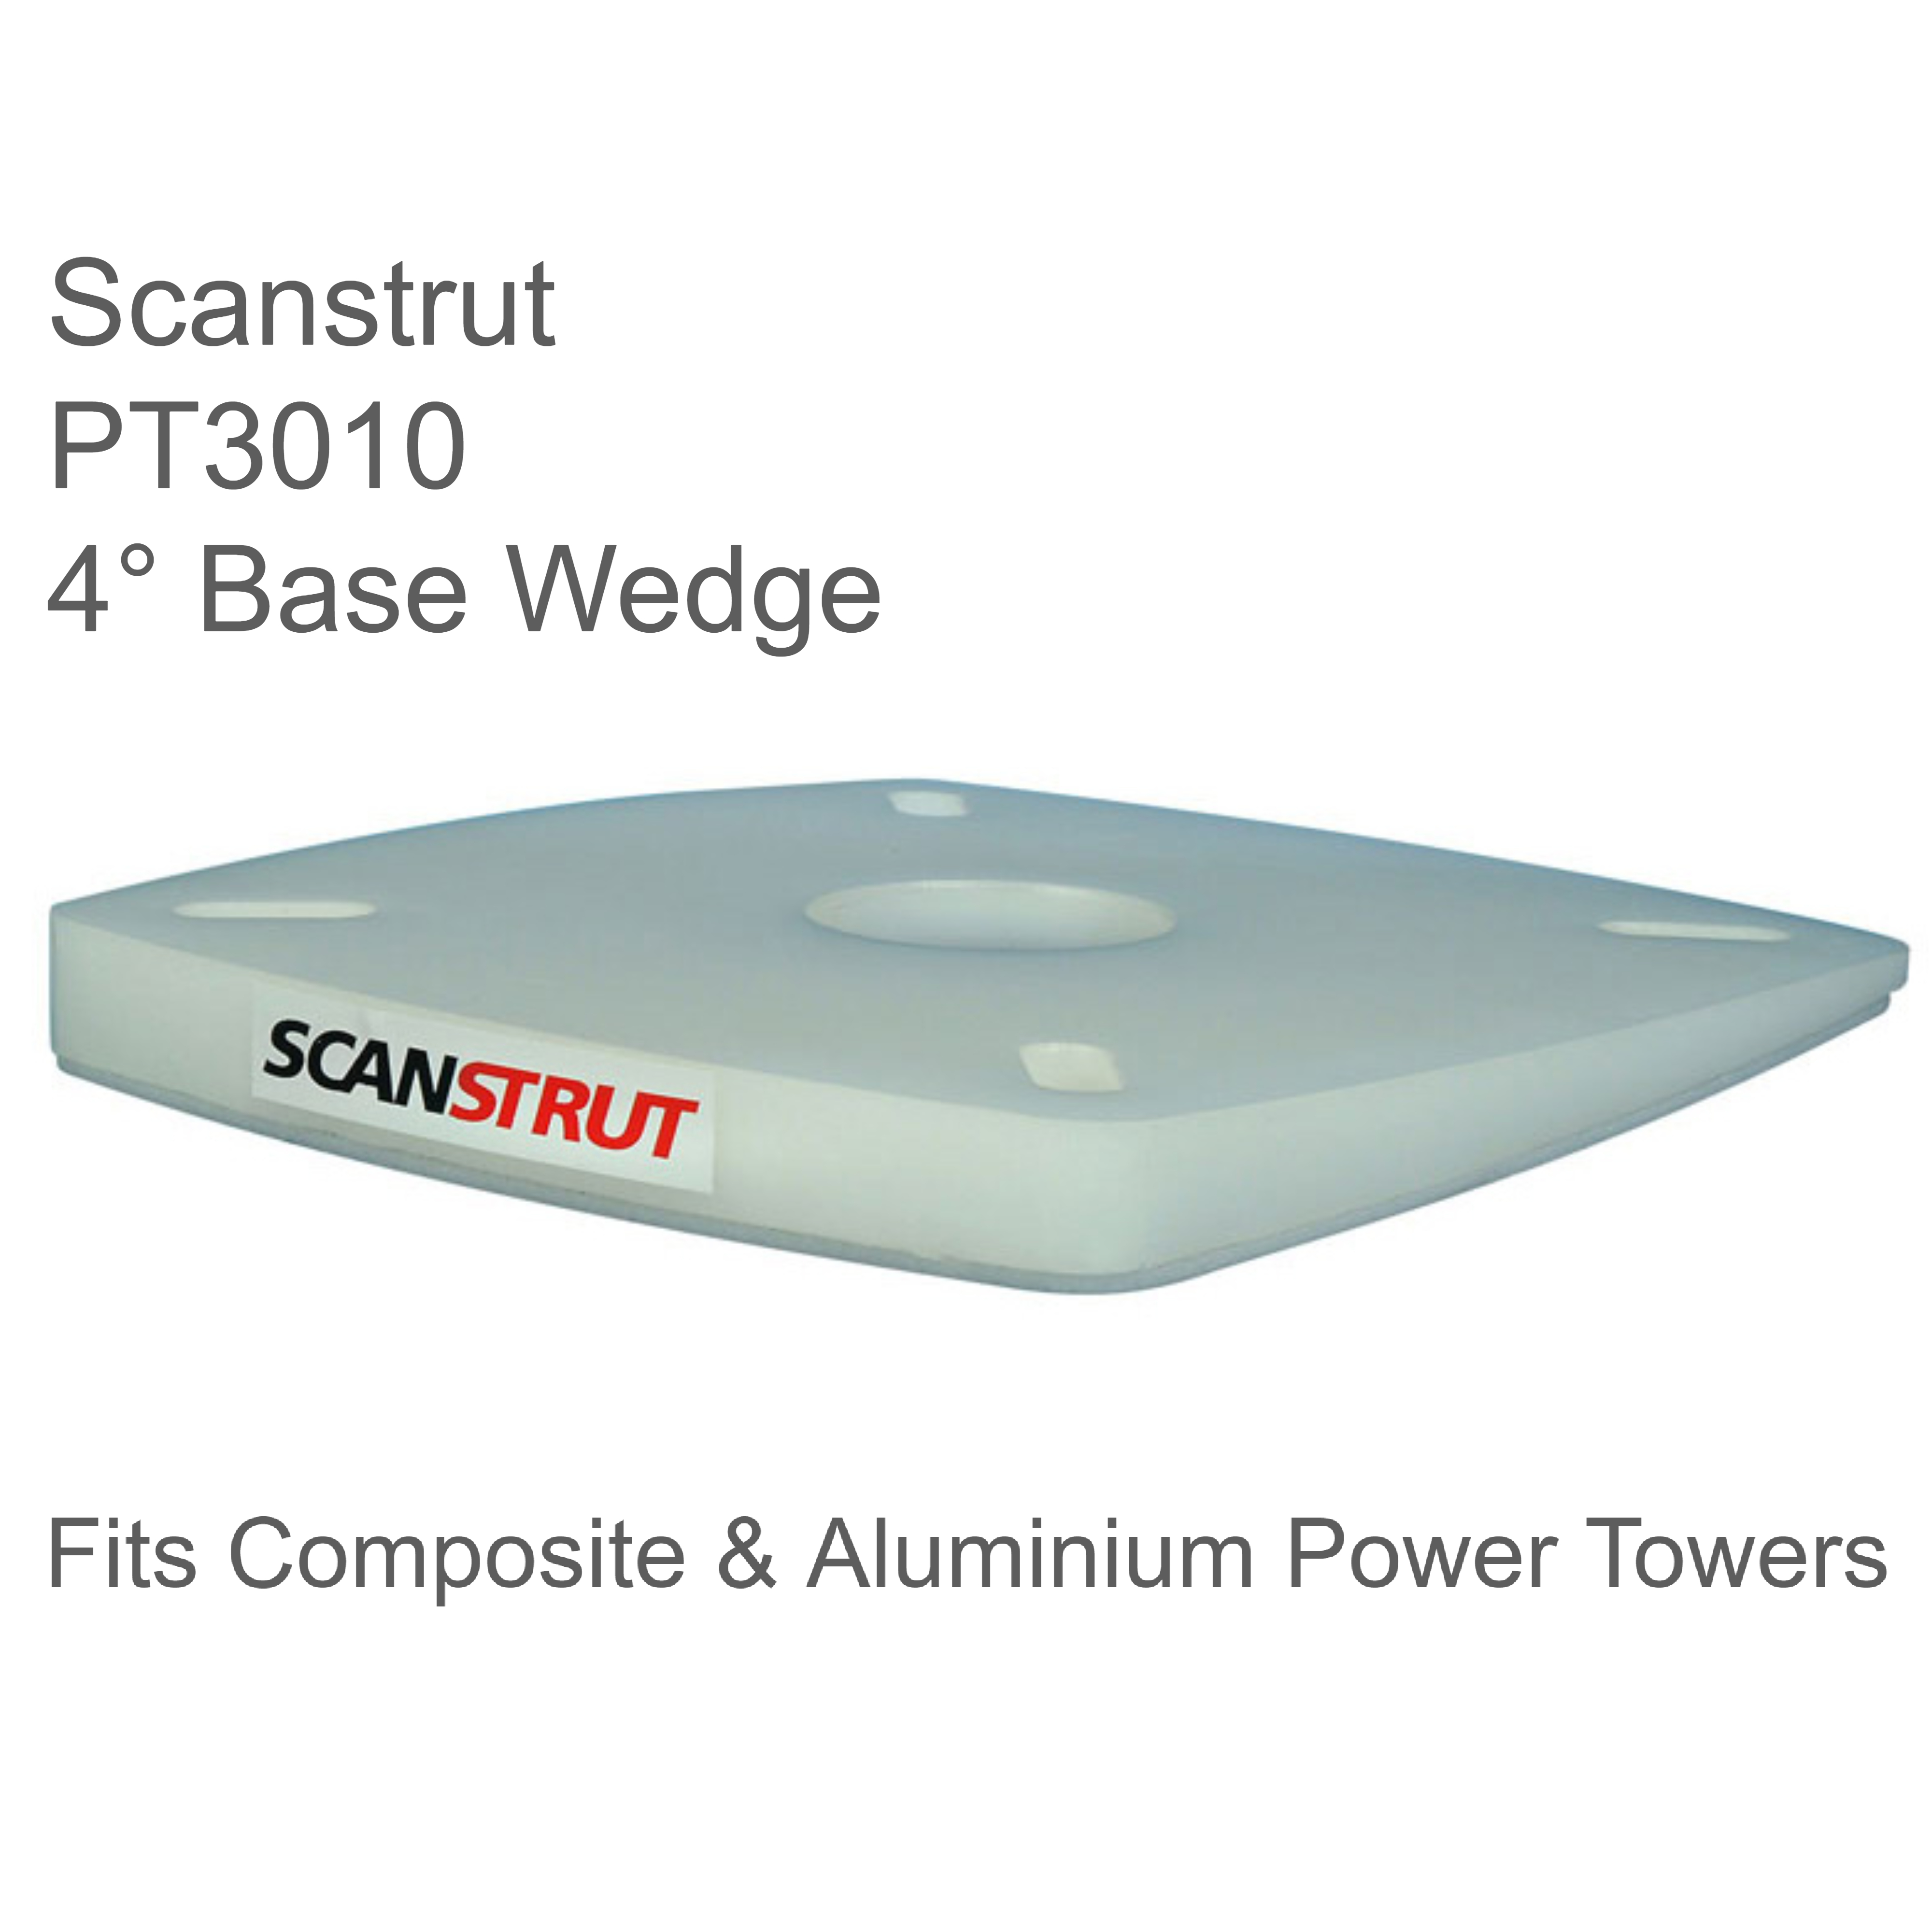 Scanstrut PT3010 - 4° Base Wedge|Fits All Composite & Aluminium Power Towers